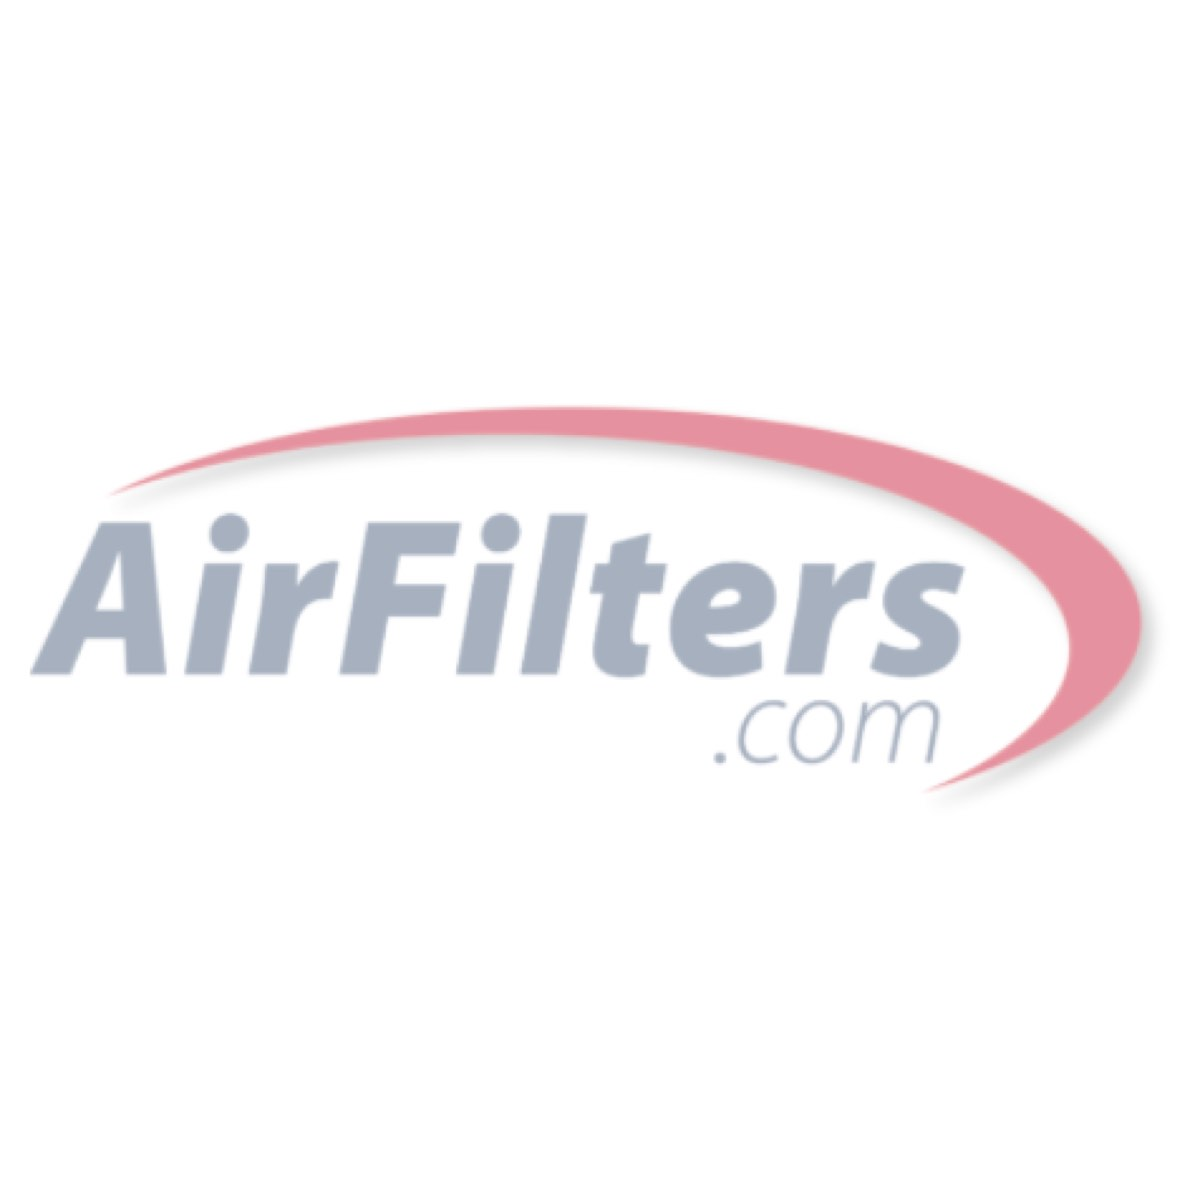 Electro-Air 20x25x5 Furnace Filters